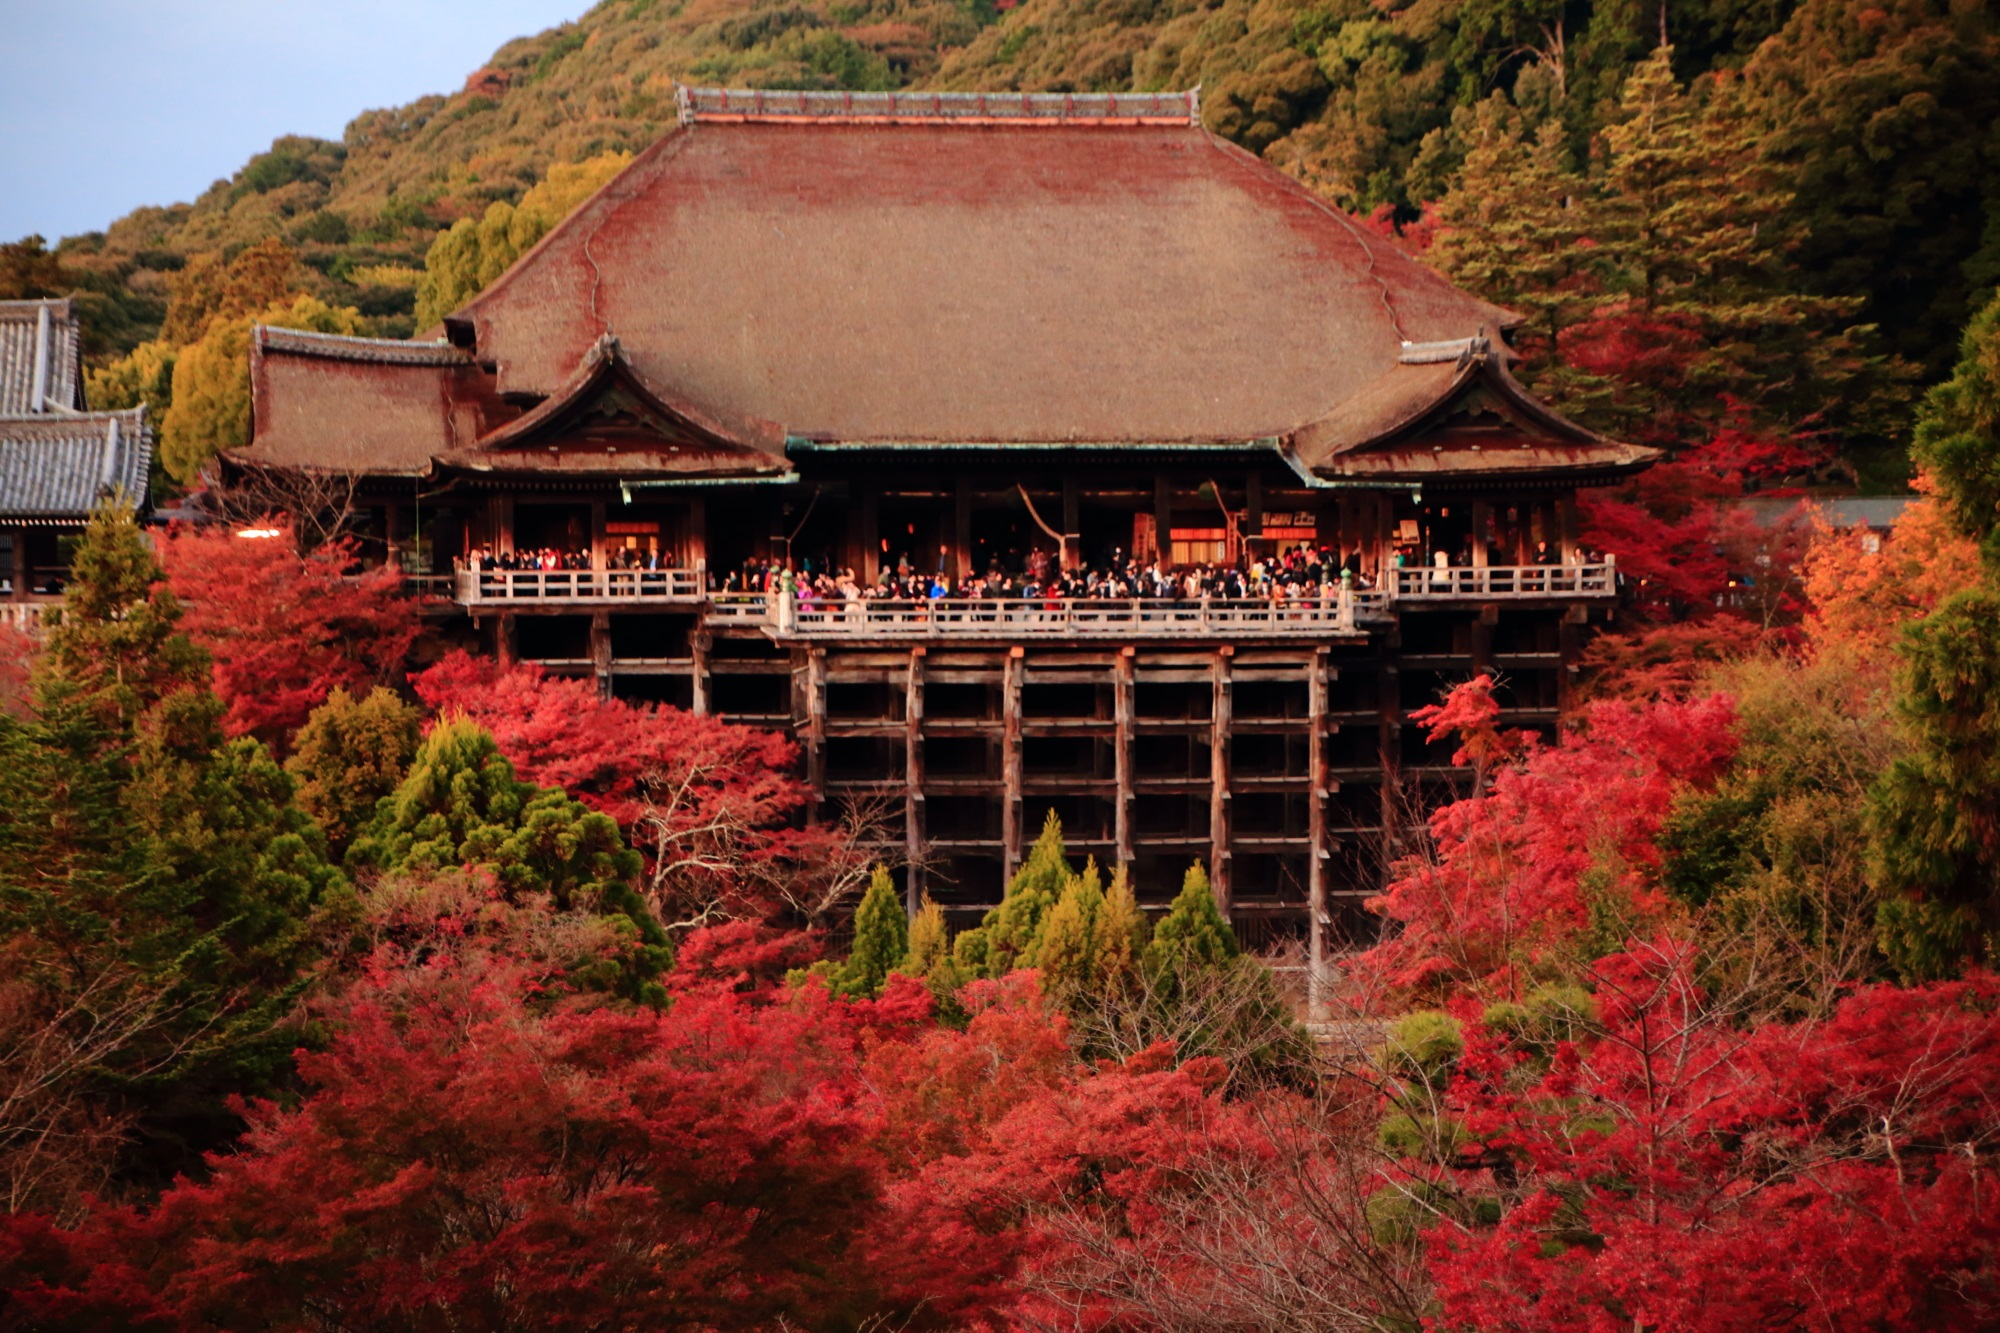 Kyoto Kiyomizudera-Temple colored leaves 清水の舞台 紅葉 見ごろ 秋